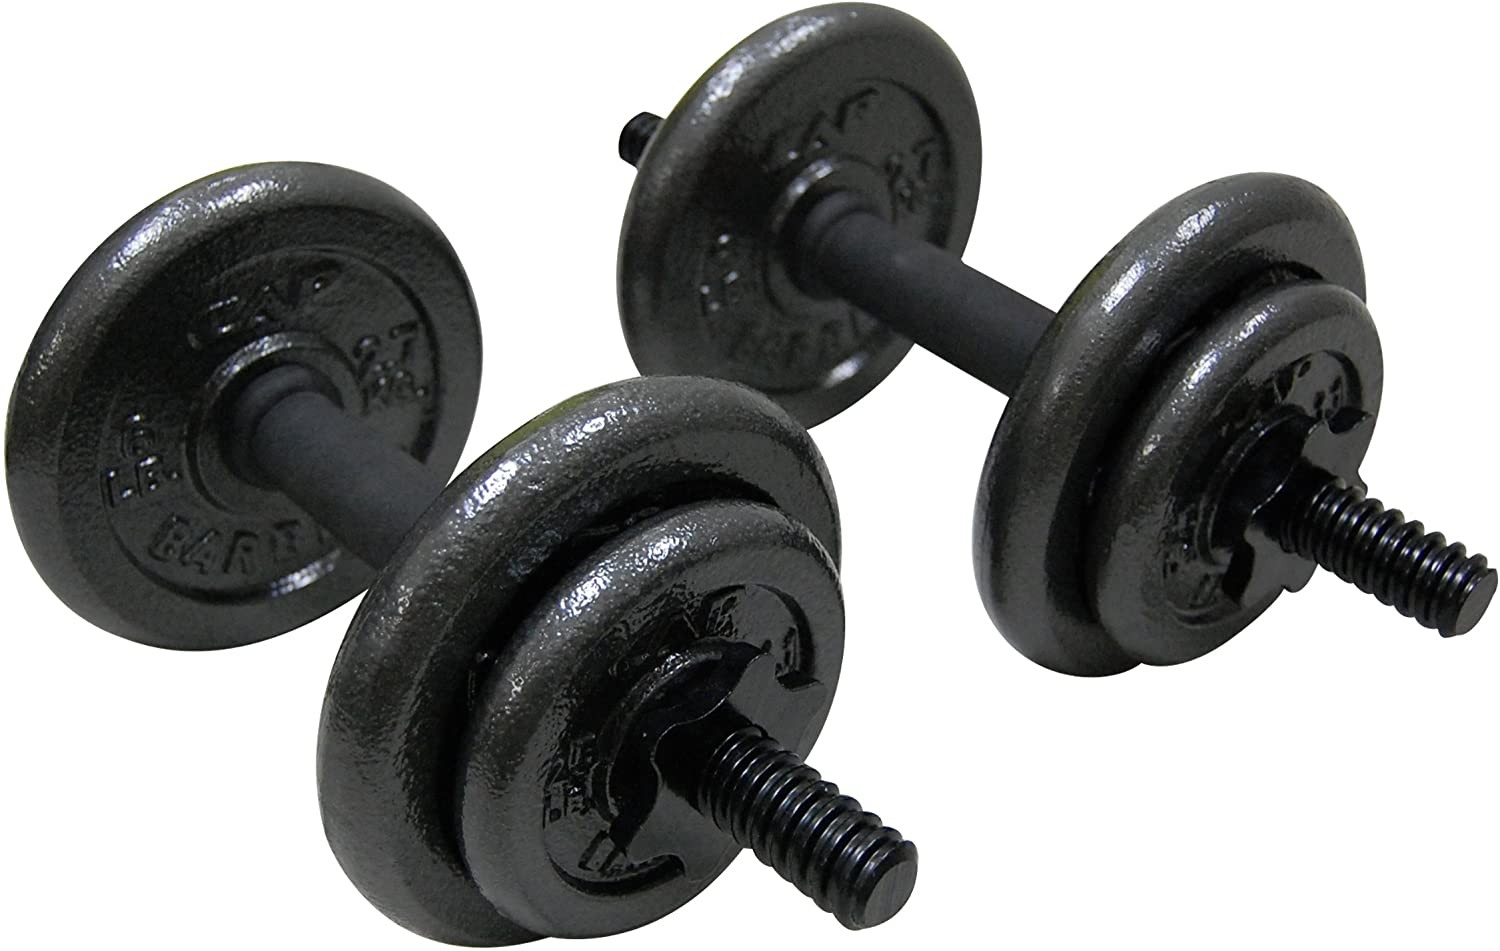 30//34//40//45//50cm Lenght For Home Gym Fitness Dumbbell Bars With Clamps 25mm